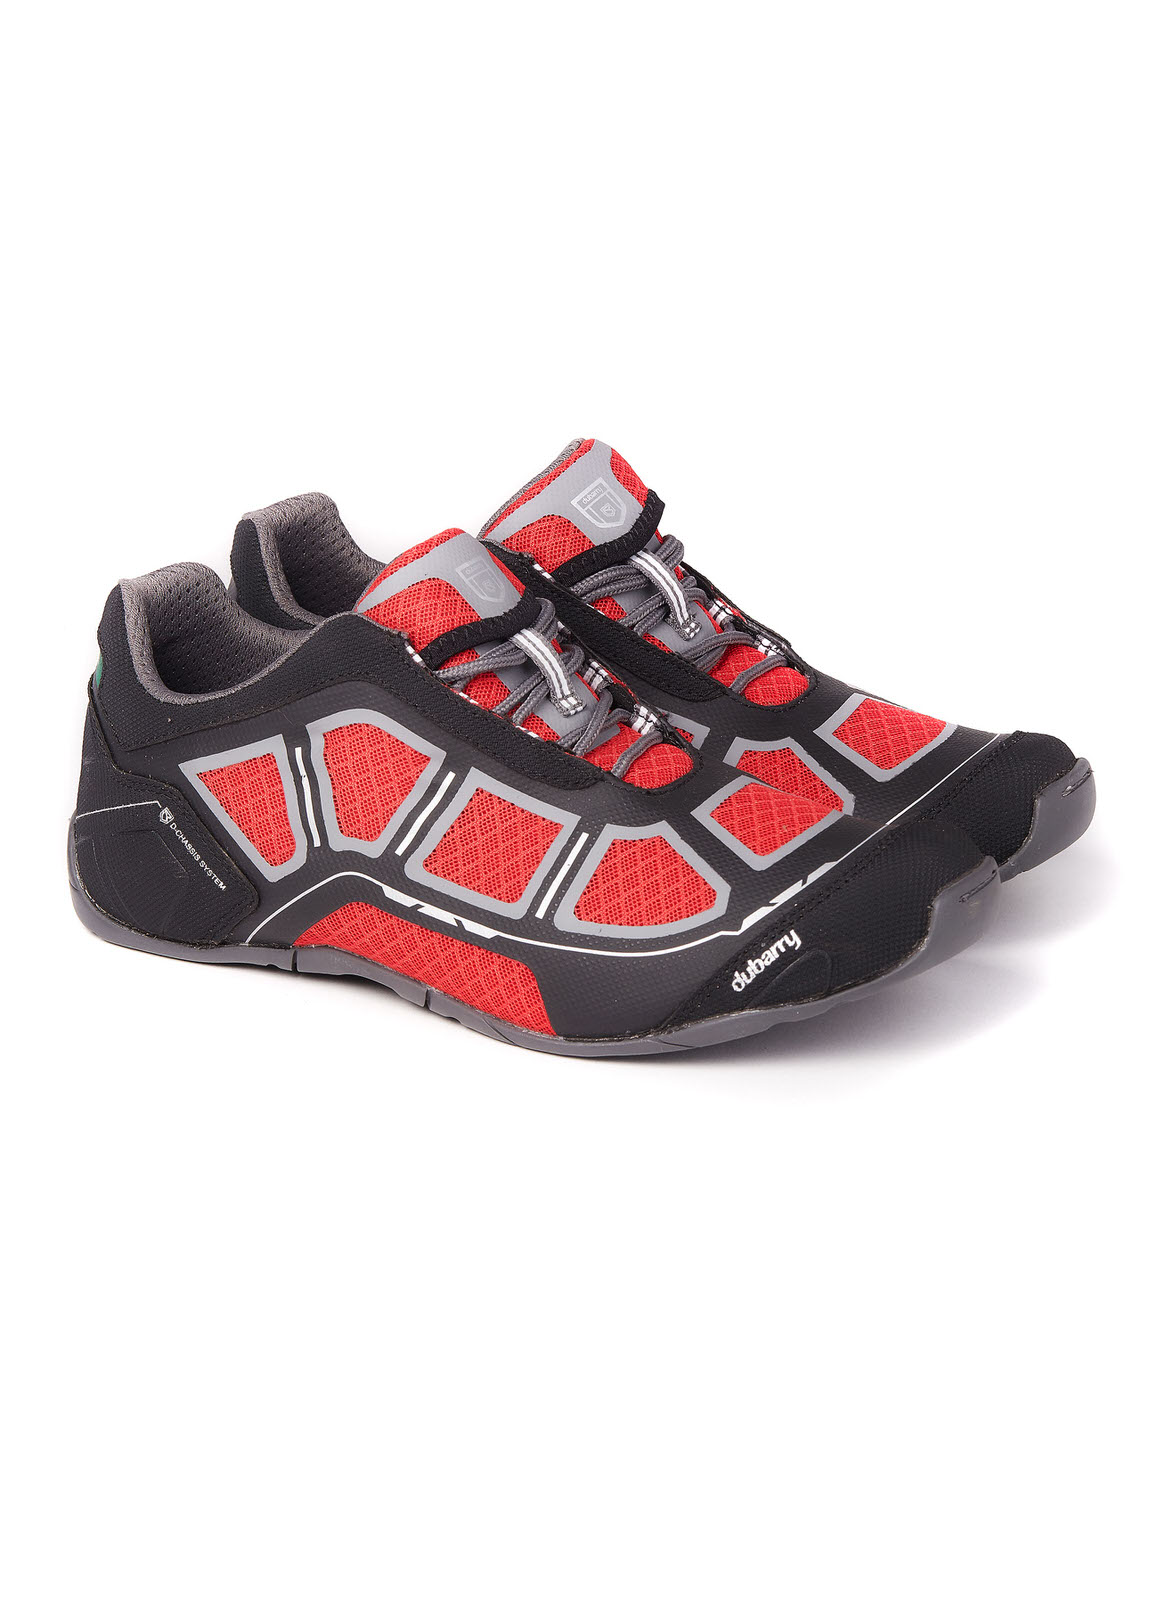 Easkey_Sailing_Shoe_Red_Multi_Image_1